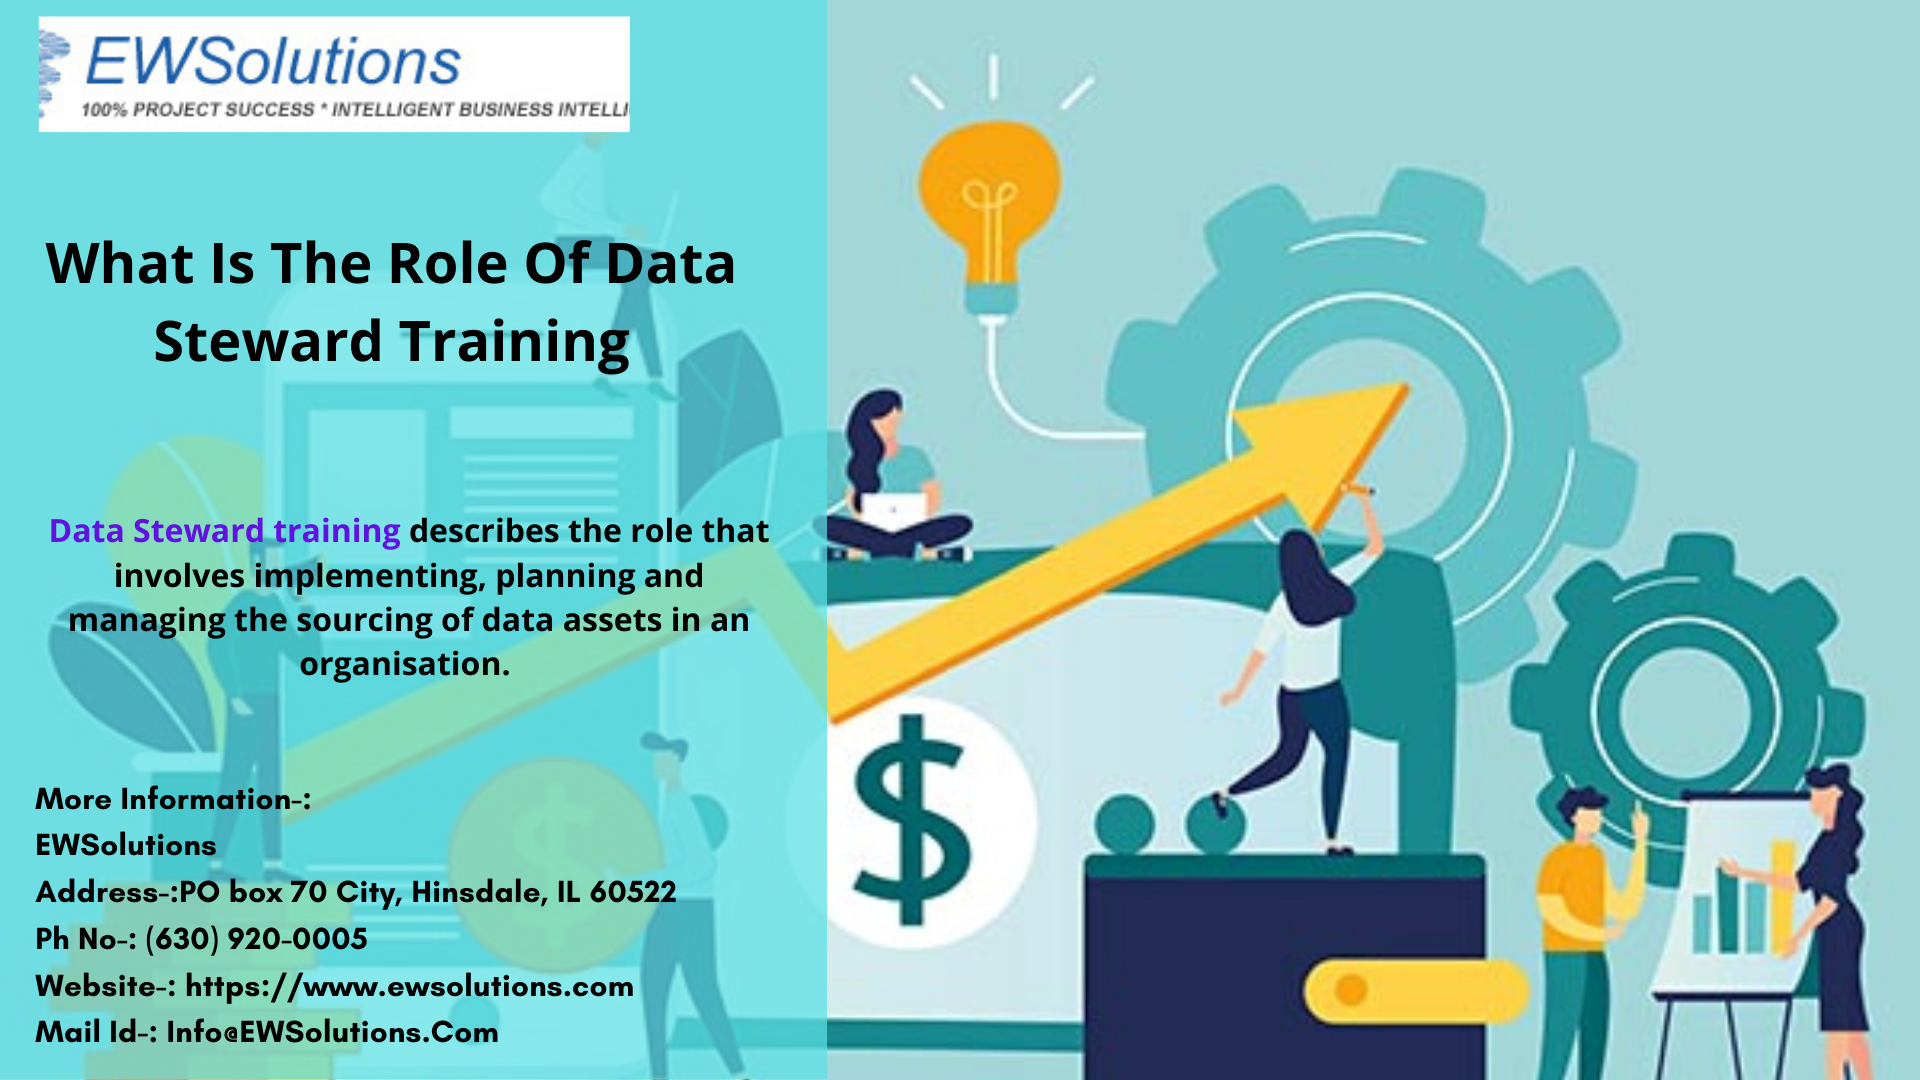 What Is The Role Of Data Steward Training Steward Testing Strategies Enterprise Architecture